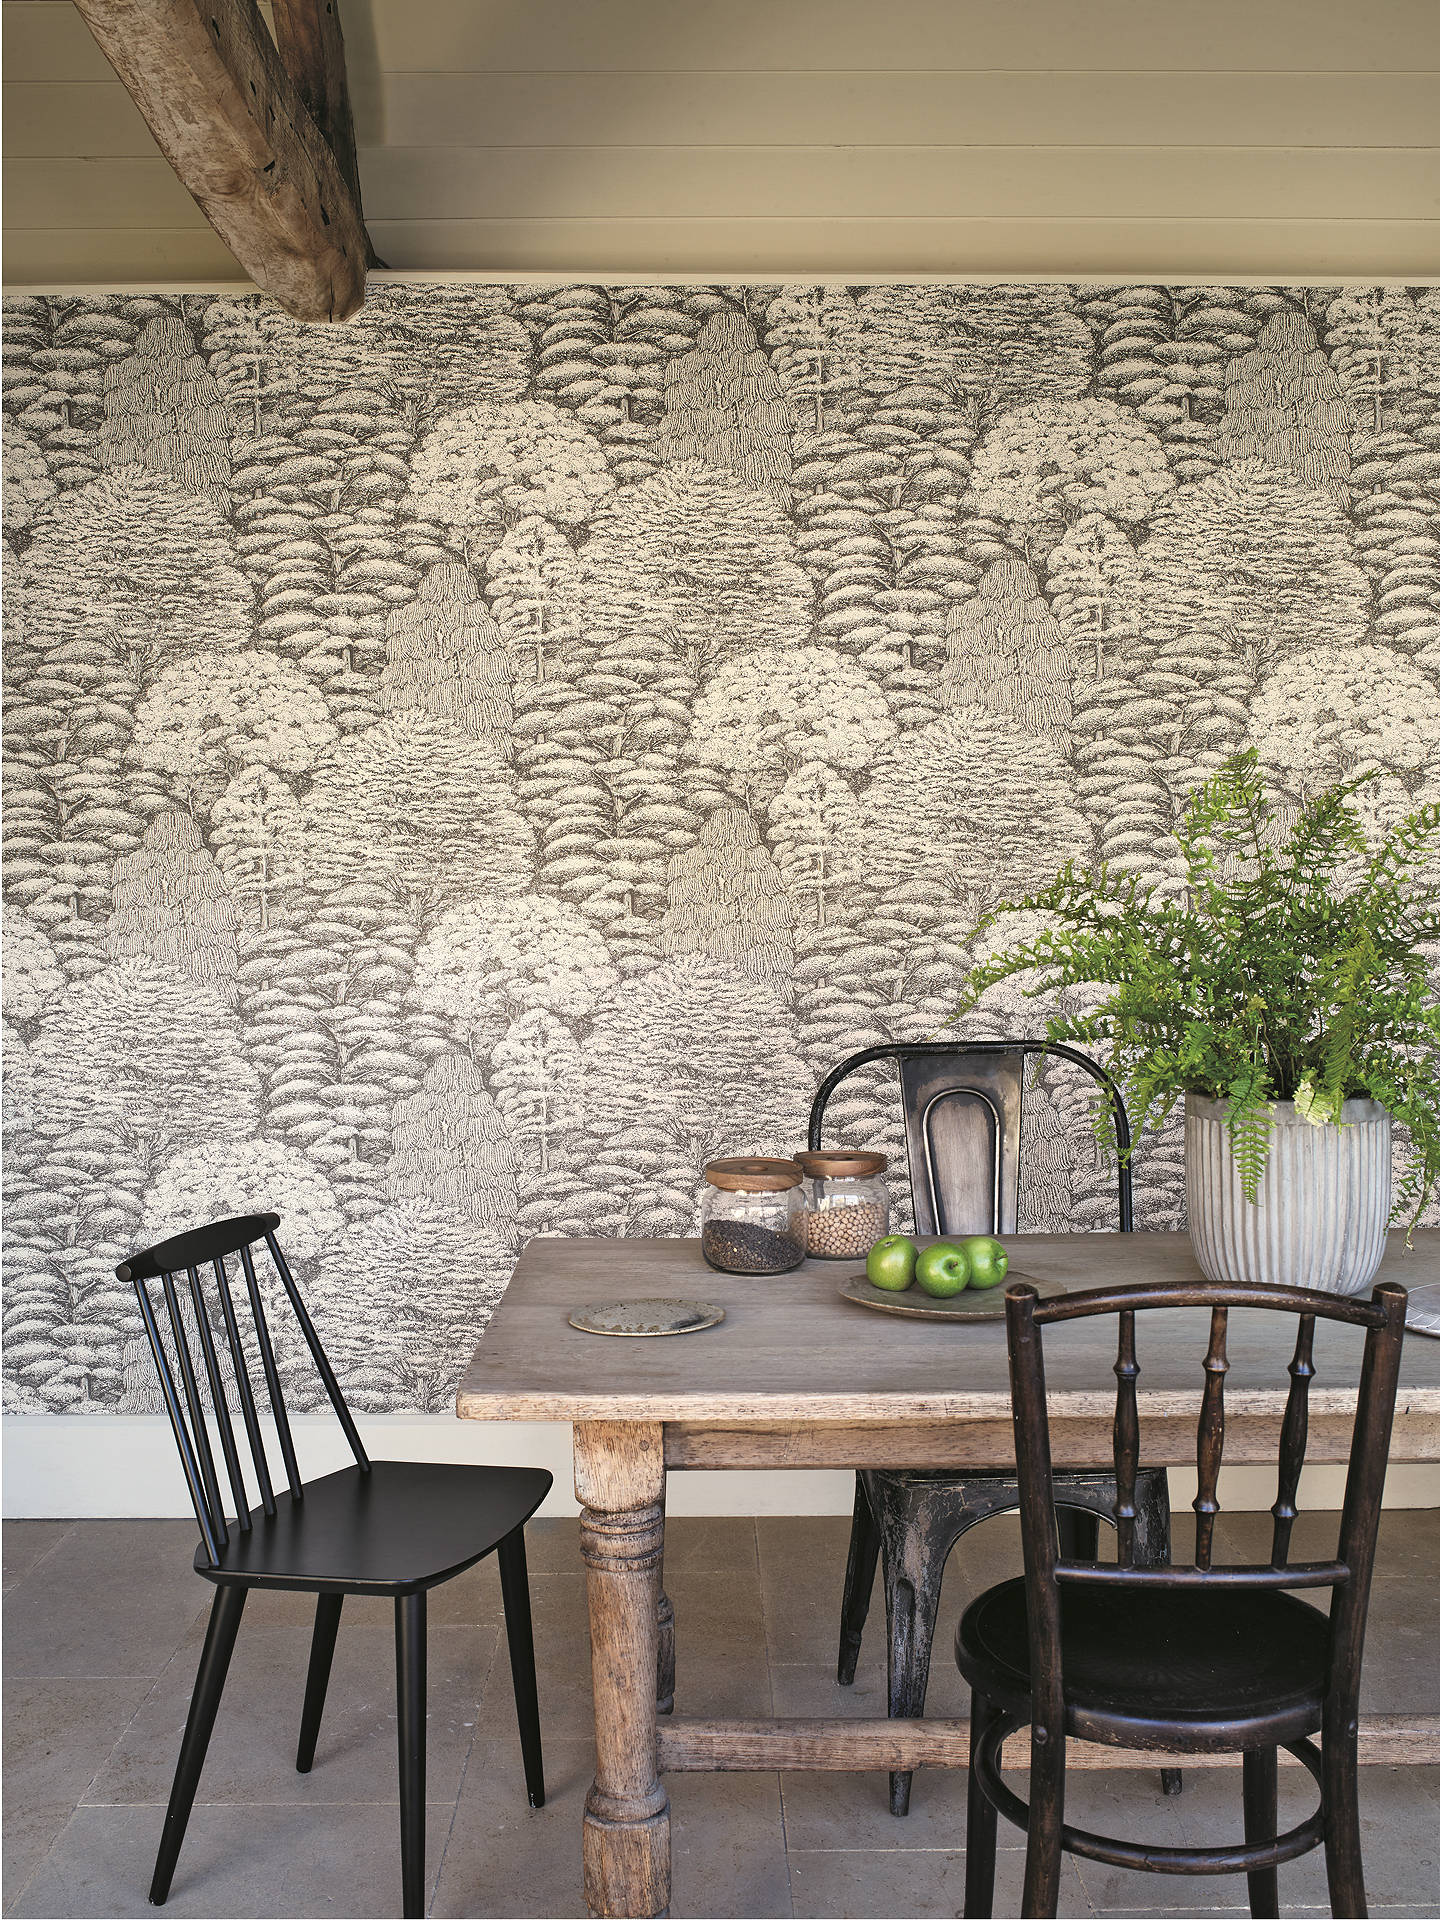 Buy Sanderson Woodland Toile Wallpaper, Ivory / Charcoal DWOW215716 Online at johnlewis.com